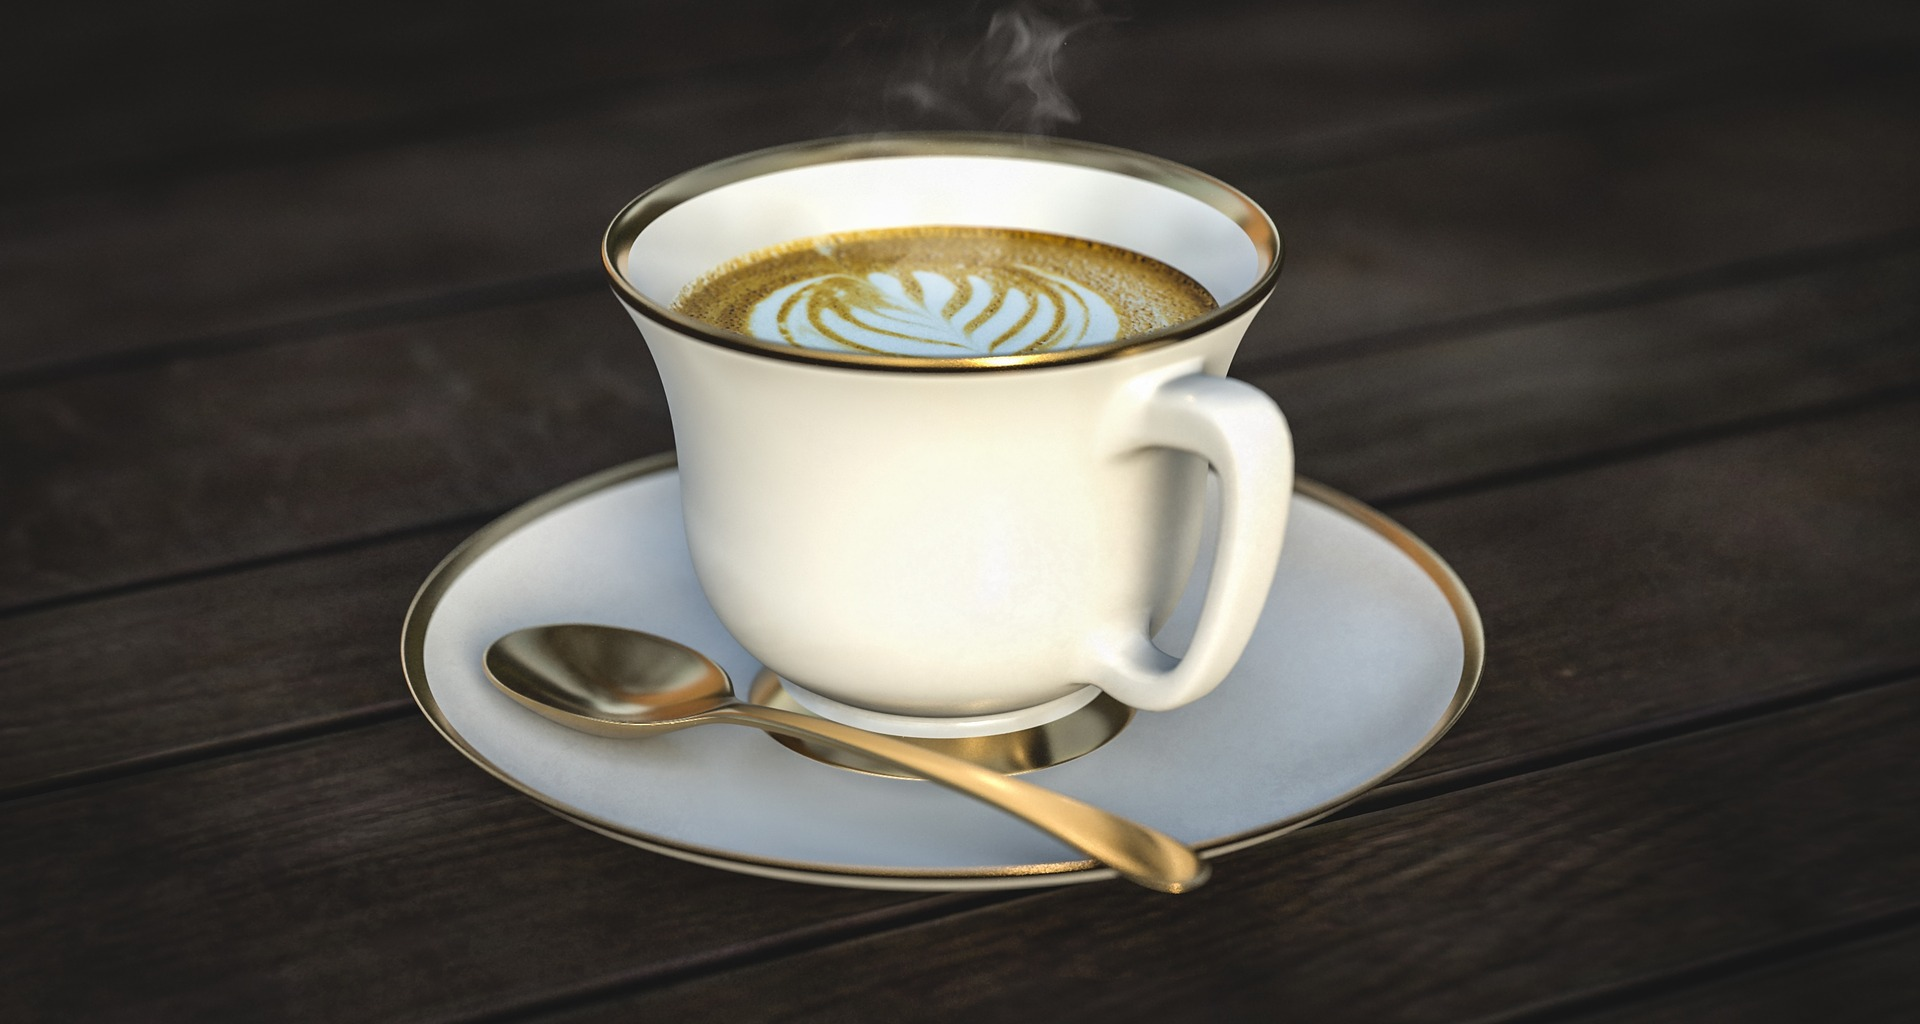 a cappuccino in a white teacup with a saucer and spoon, pretty design in foam